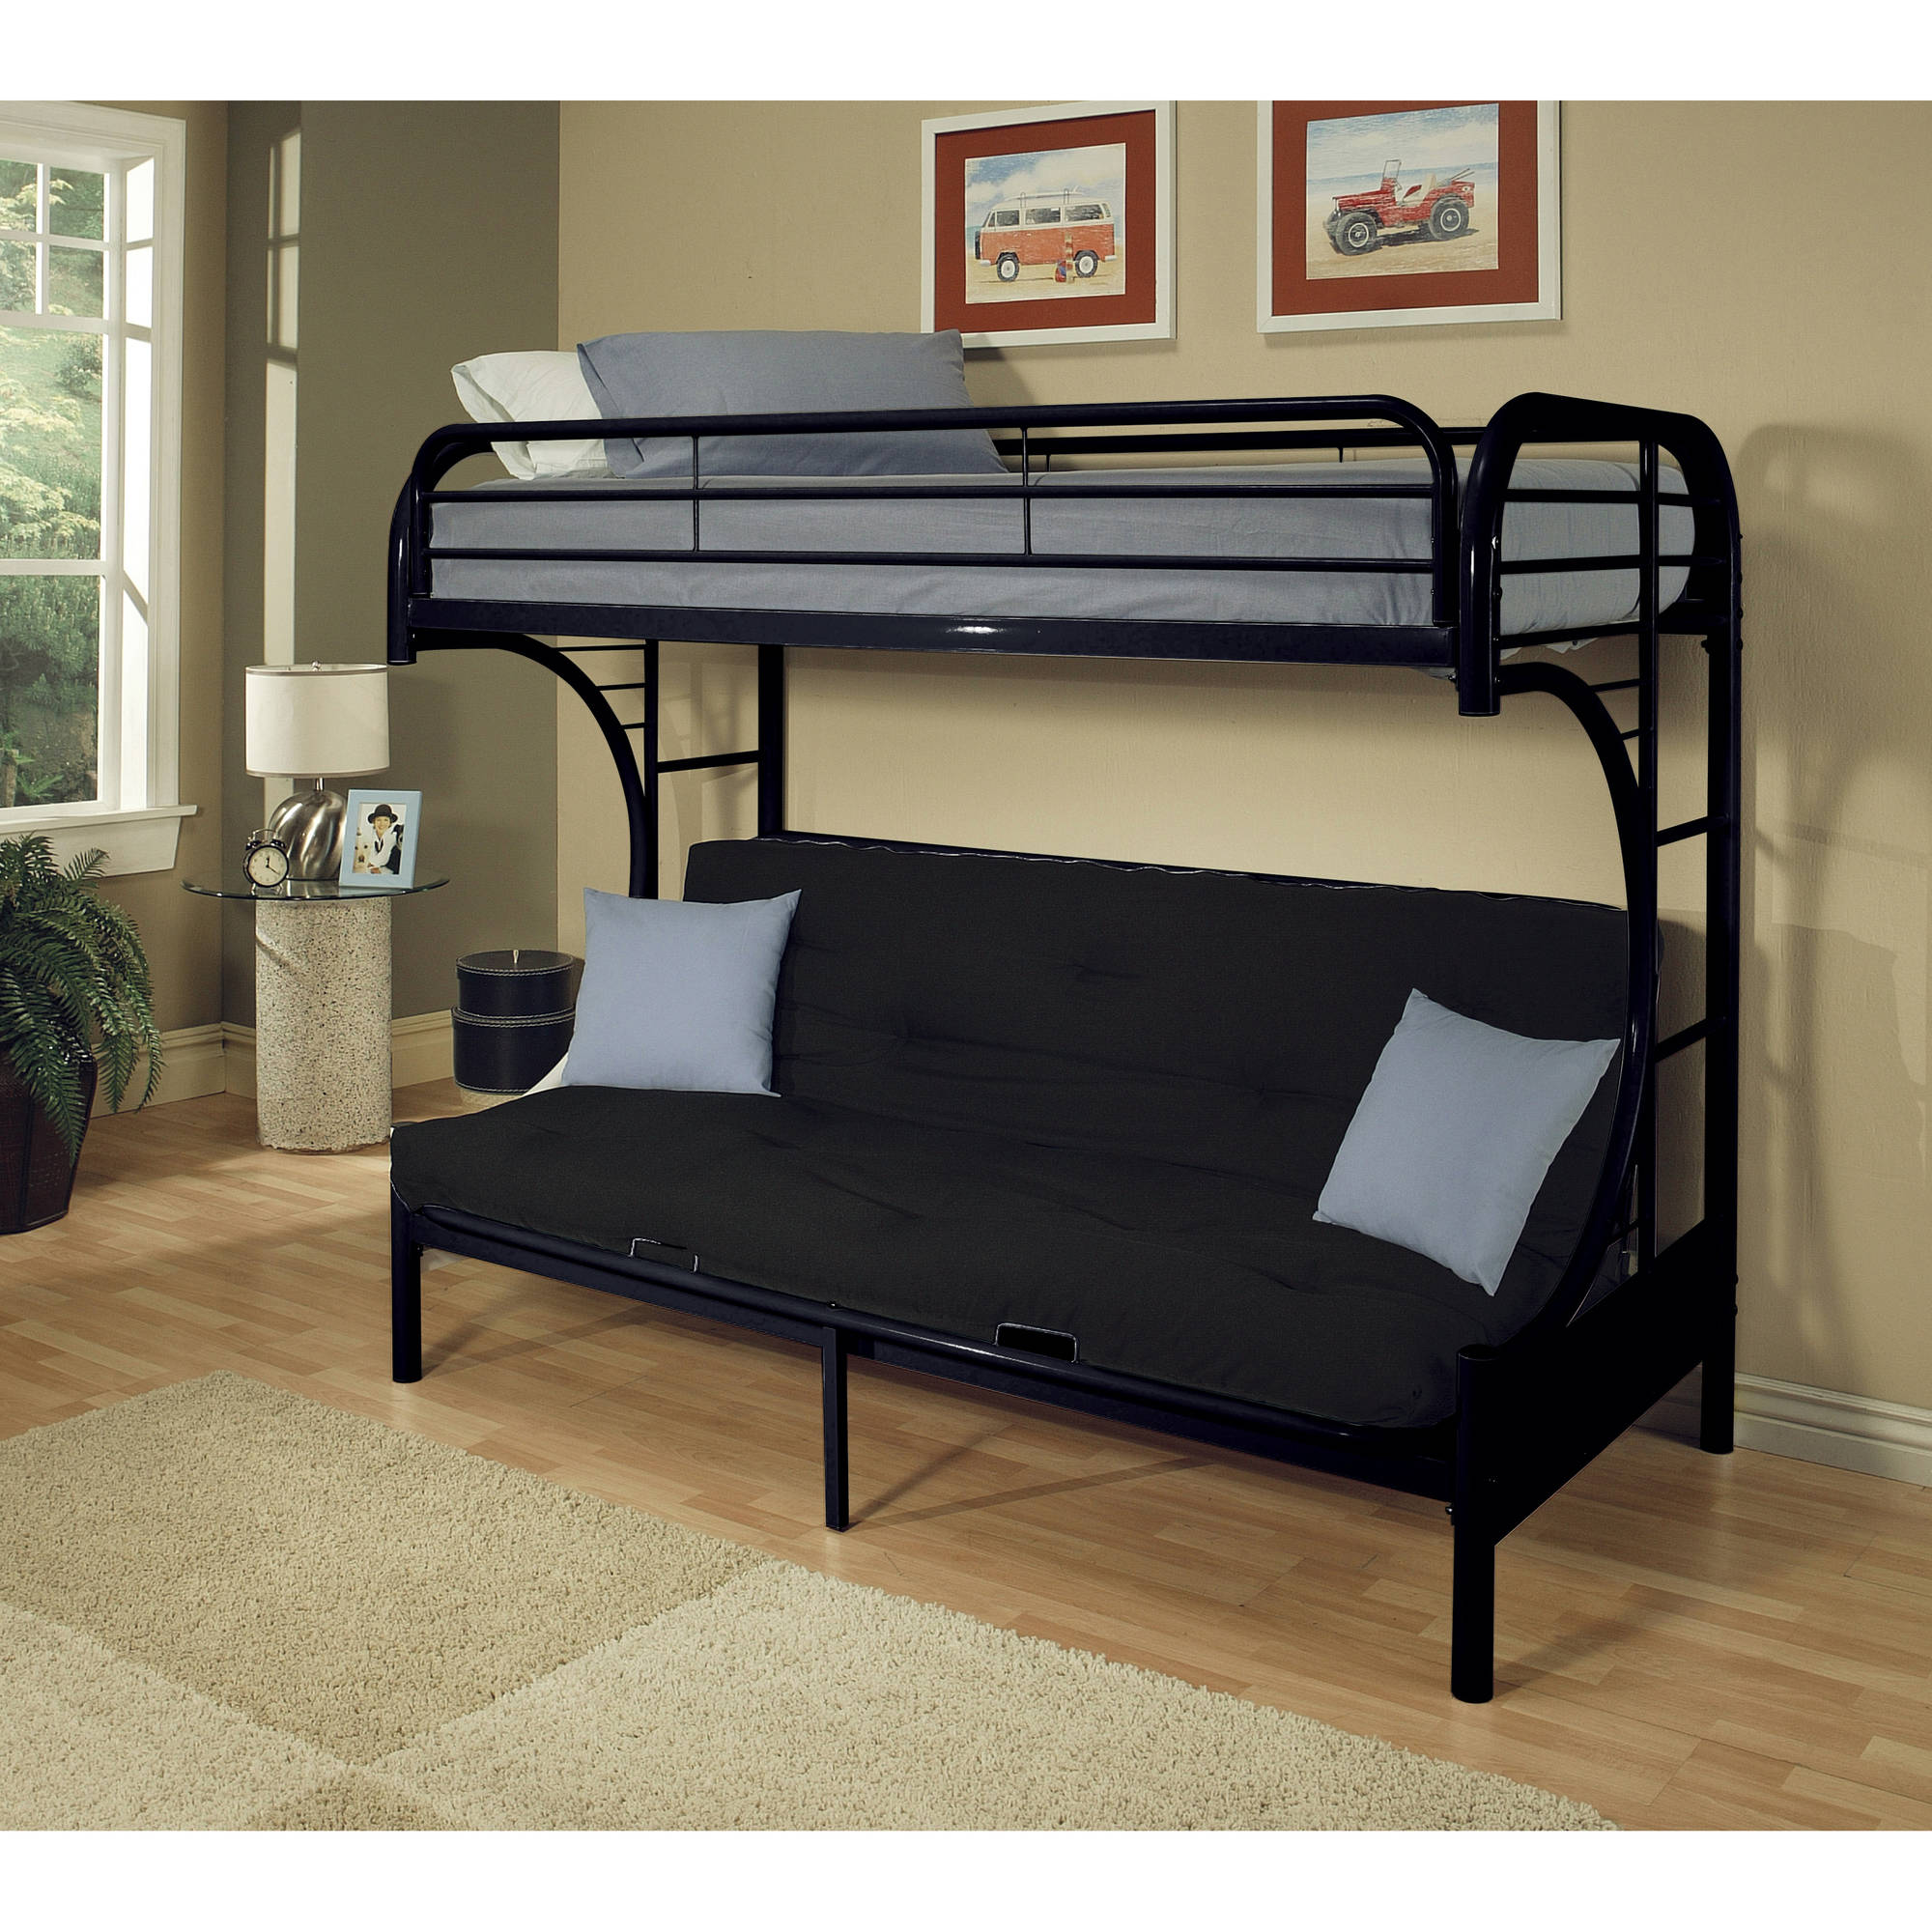 futon beds acme eclipse twin xl over futon metal bunk bed, black - walmart.com KRMAWSQ